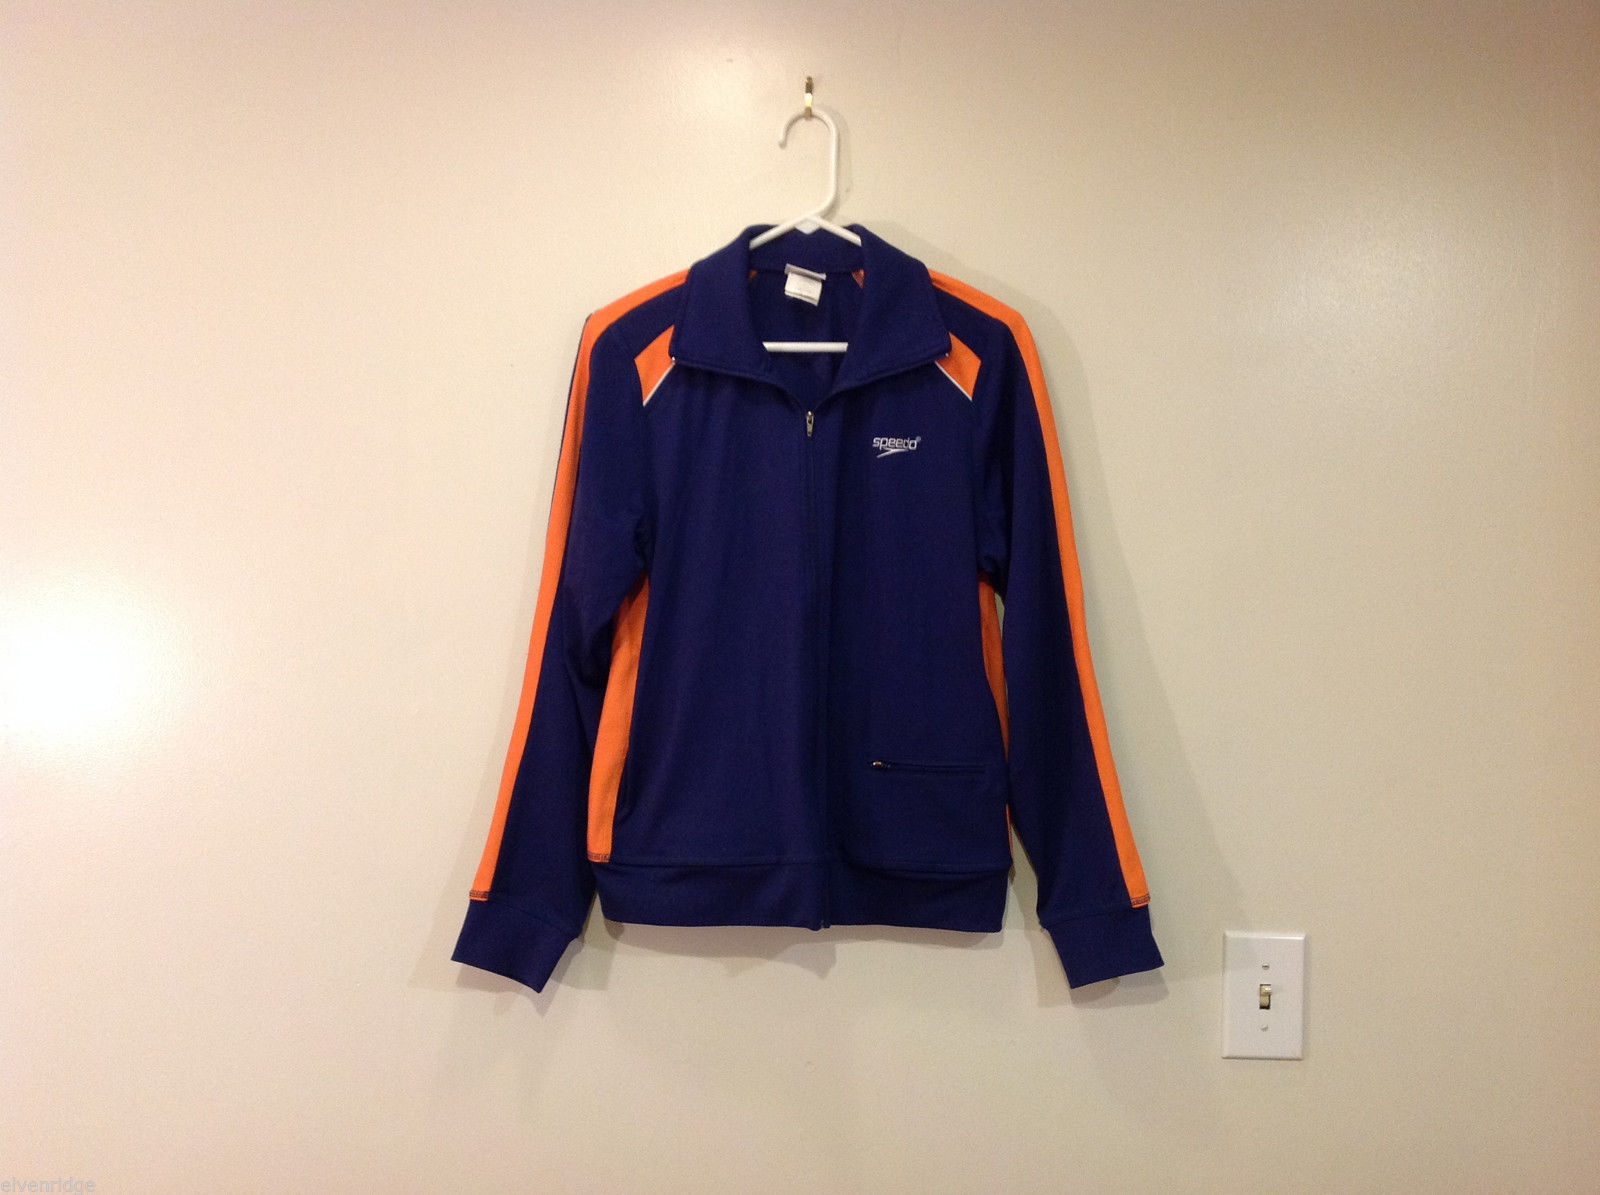 Speedo Sport Jacket Navy Blue Orange Front Zipper Side Pockets Size L